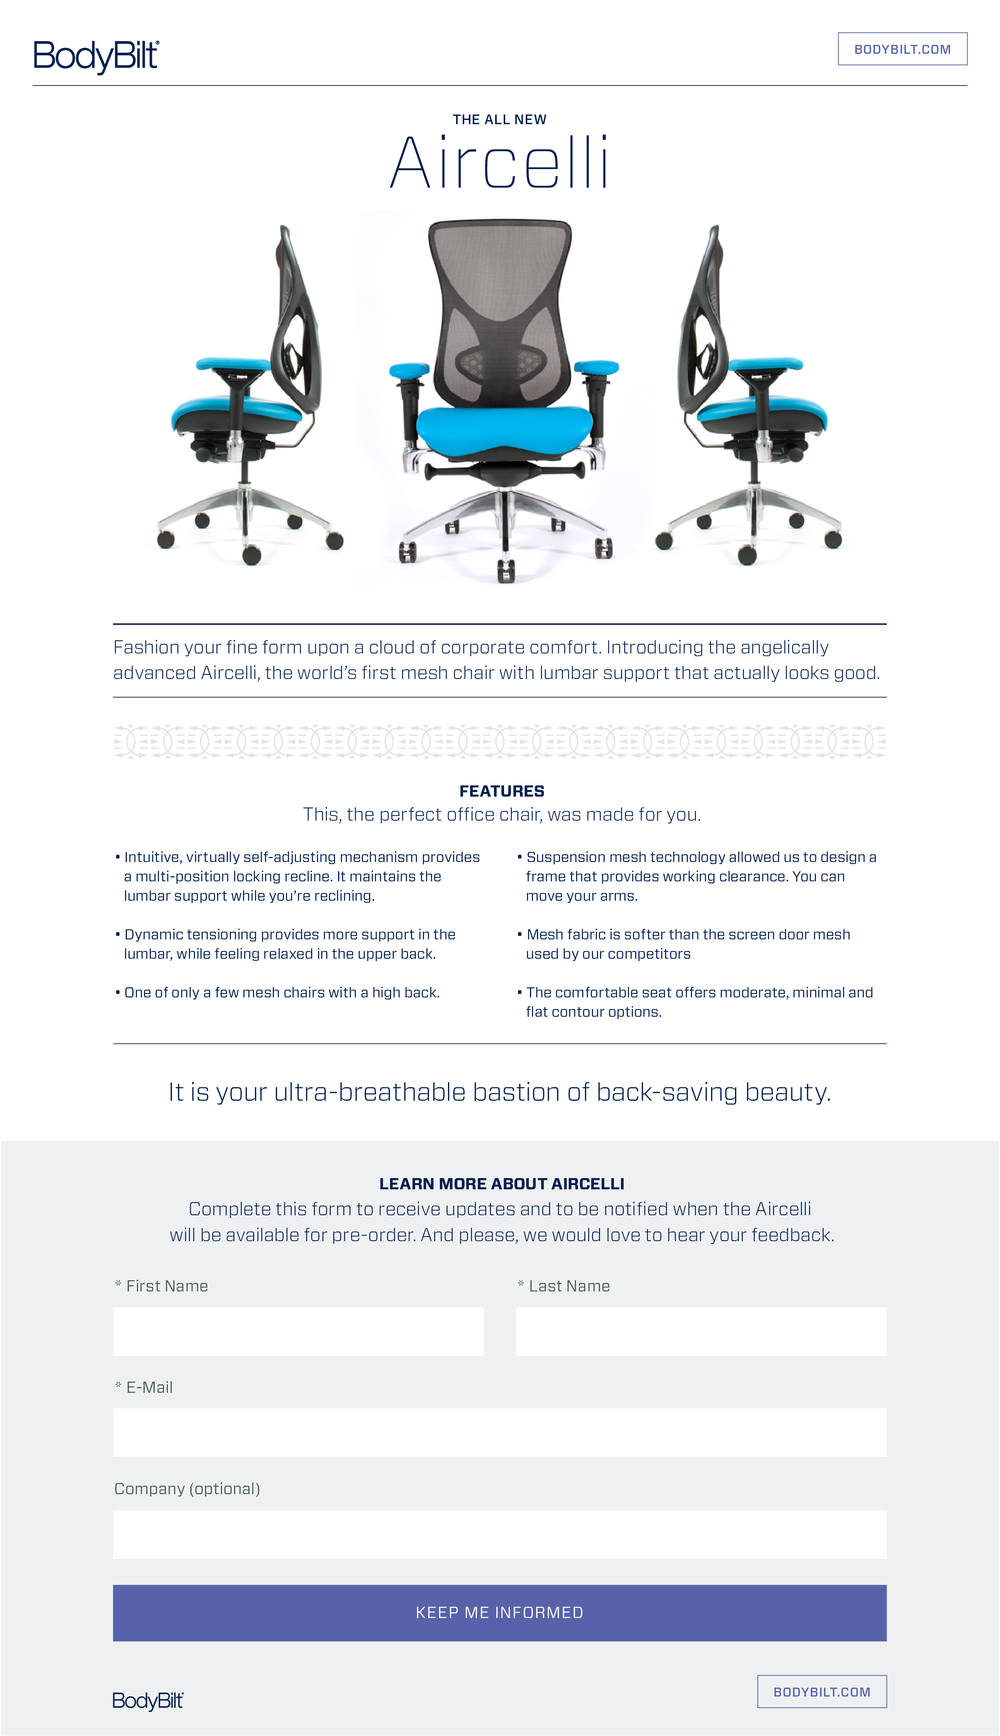 BB_Aircelli_Landingpage_Ergonomic_Chair.png